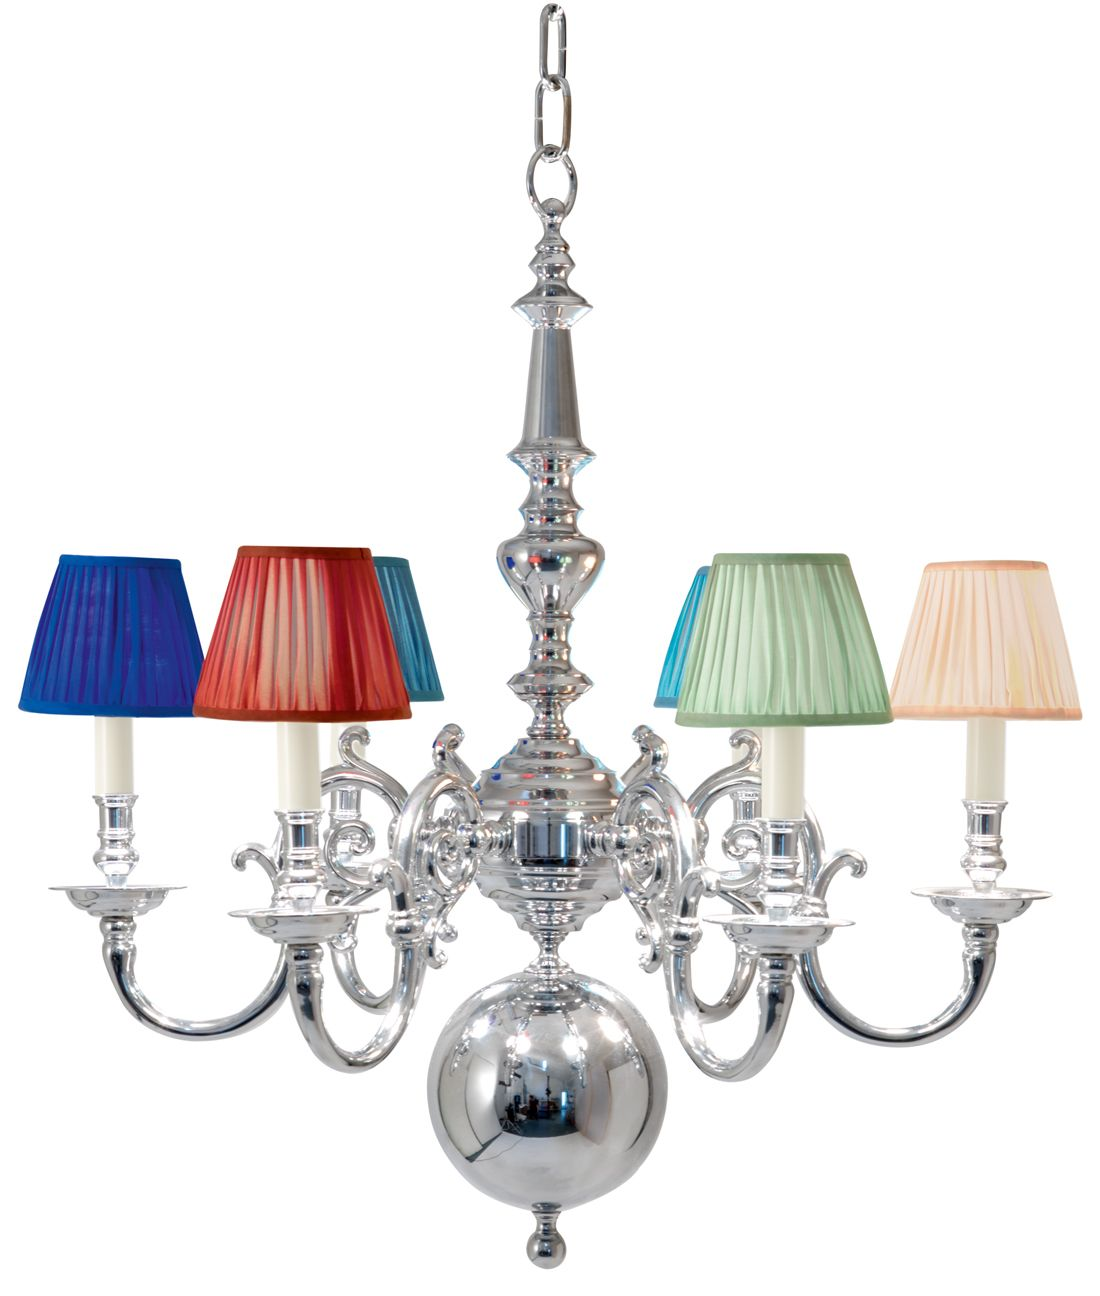 H2 023 6 light flemish chandelier shown in polished chrome 6 light flemish chandelier shown in polished chrome arubaitofo Gallery